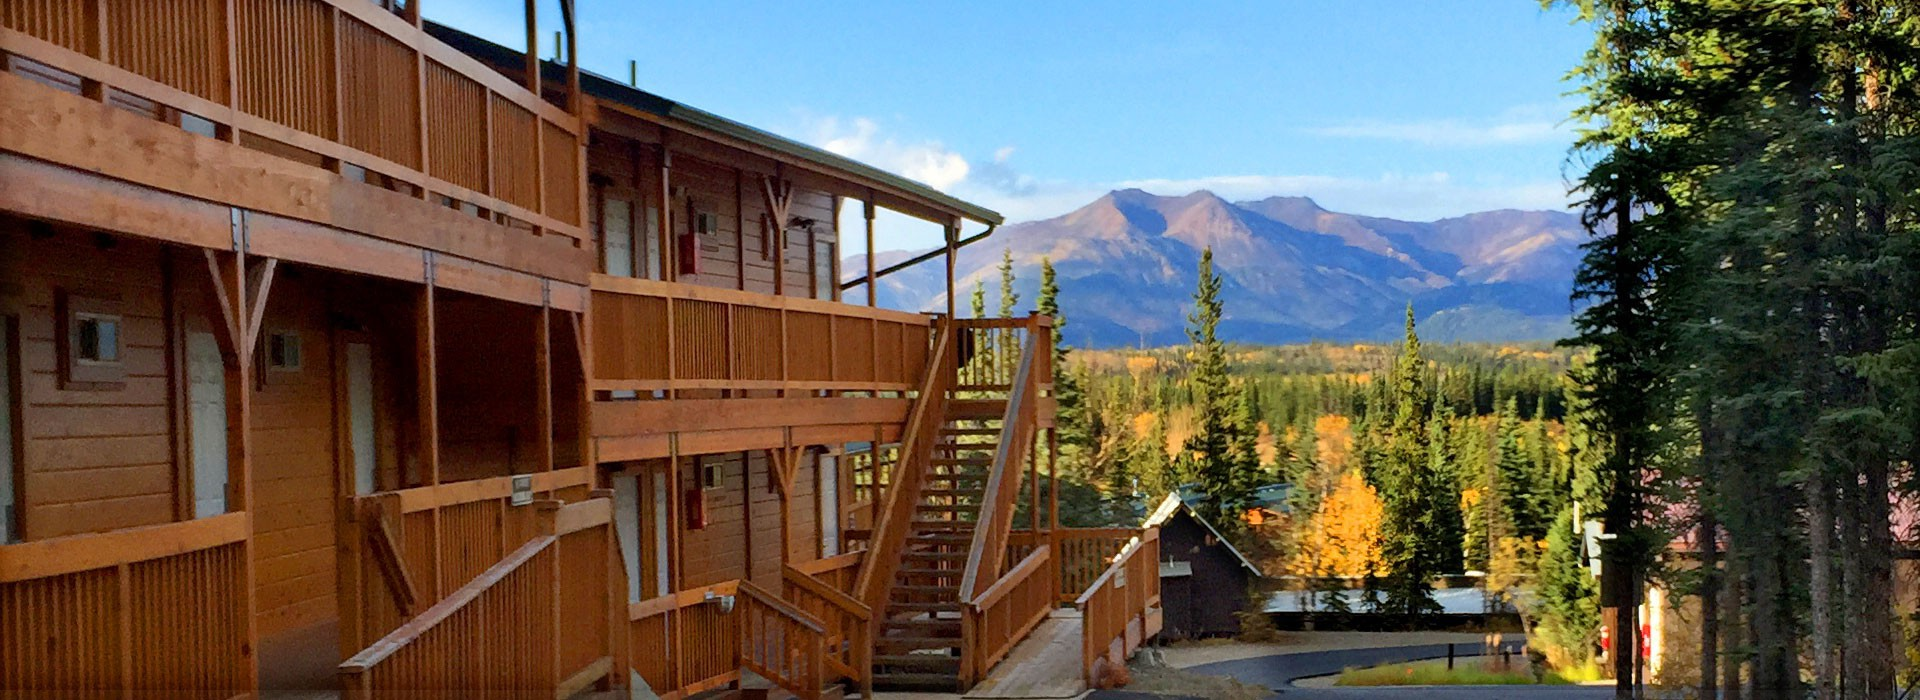 Denali National Park Resort Amp Lodging In Alaska Denali